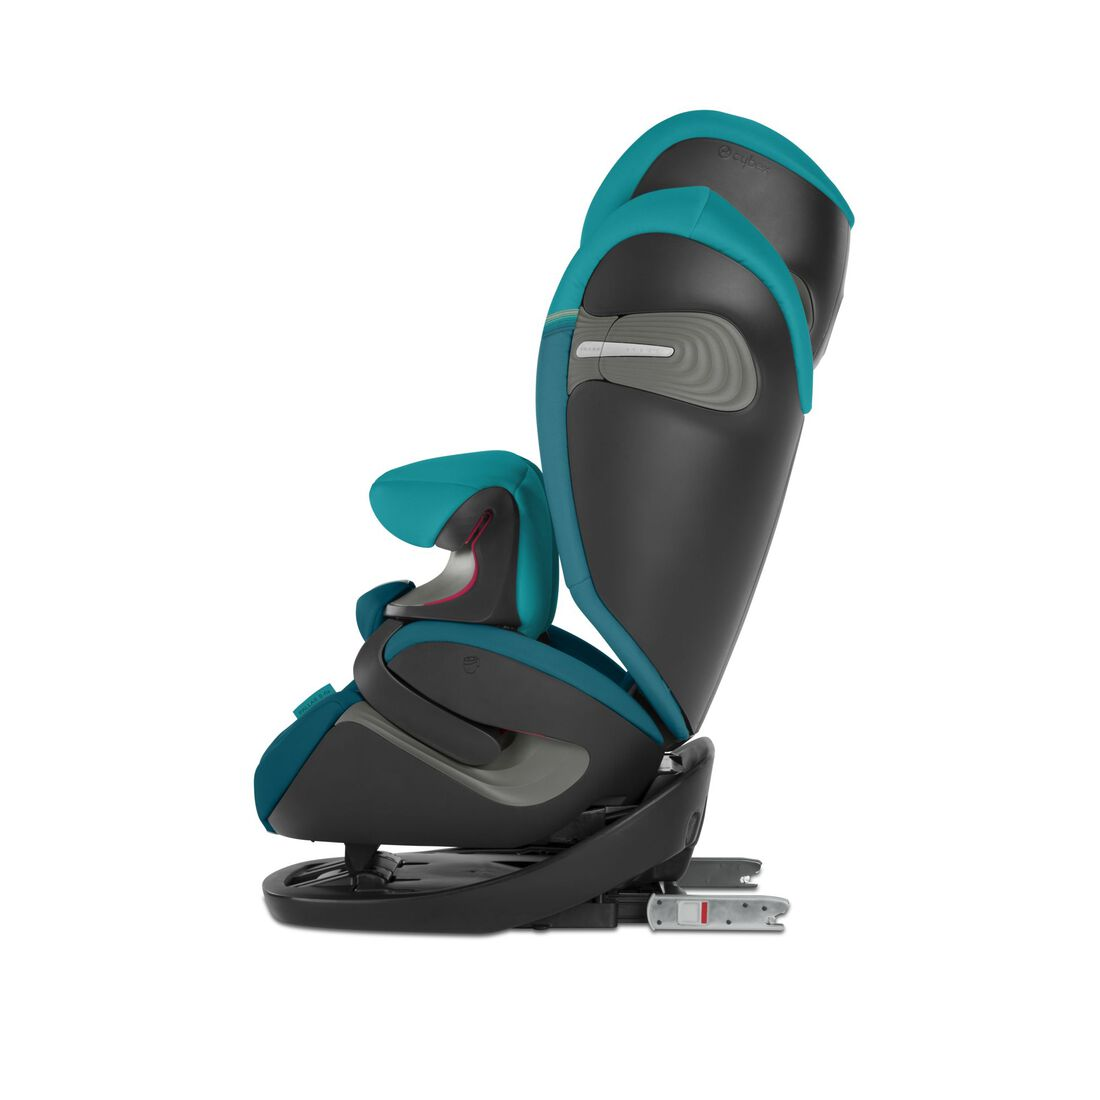 CYBEX Pallas S-fix - River Blue in River Blue large image number 2